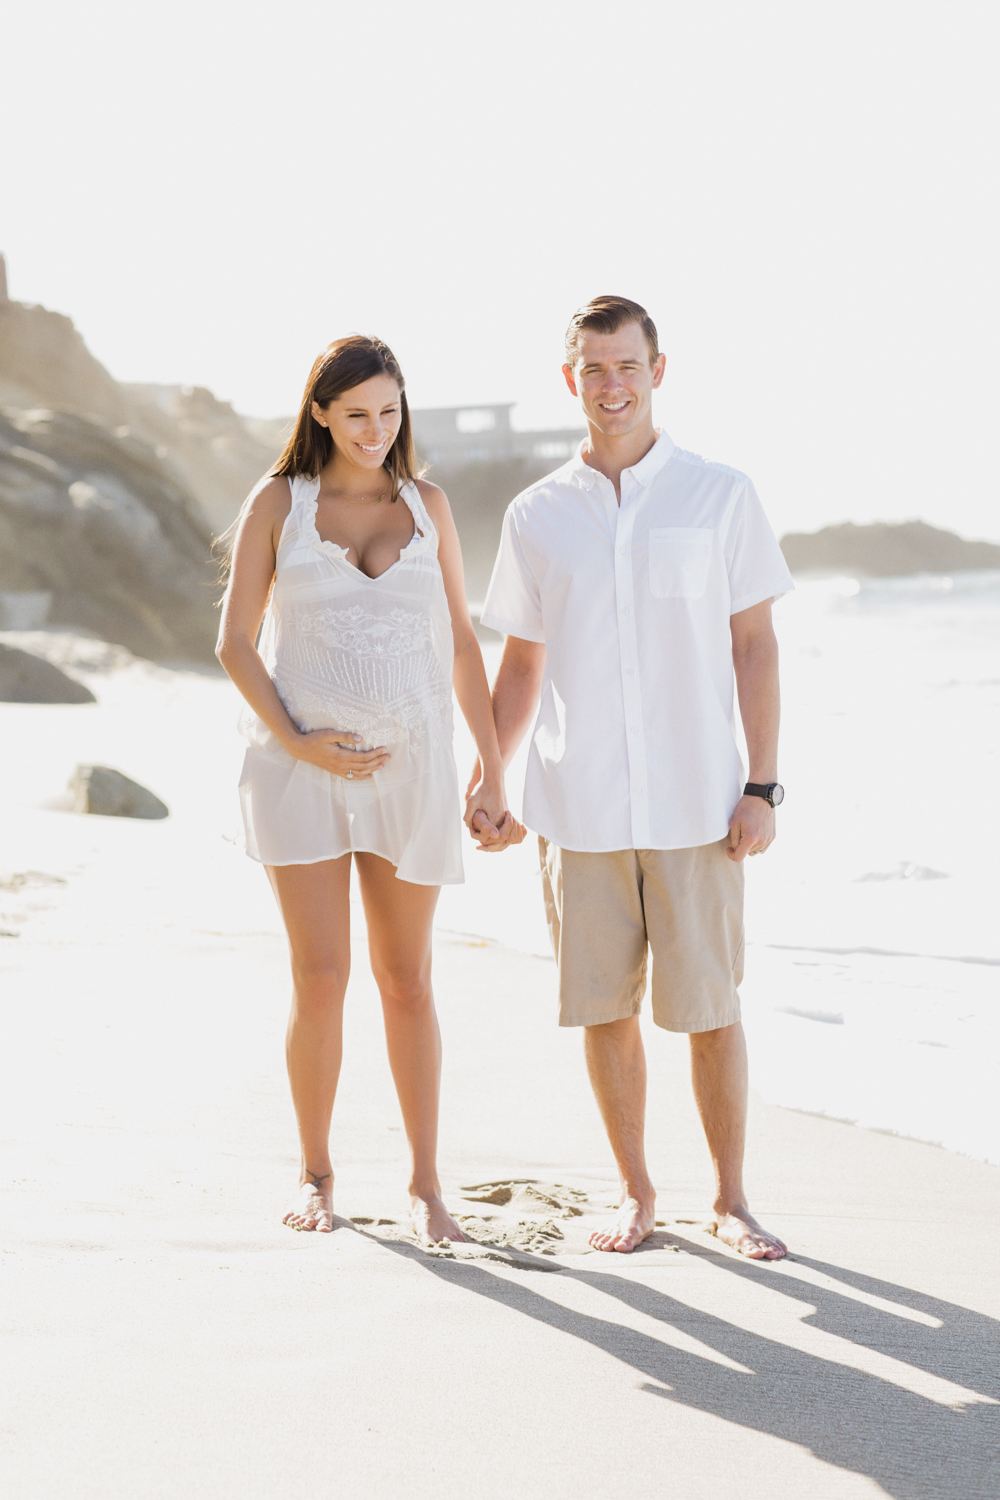 LagunaBeach_Family_MaternityShoot_SidneyKraemer_Low-59.jpg